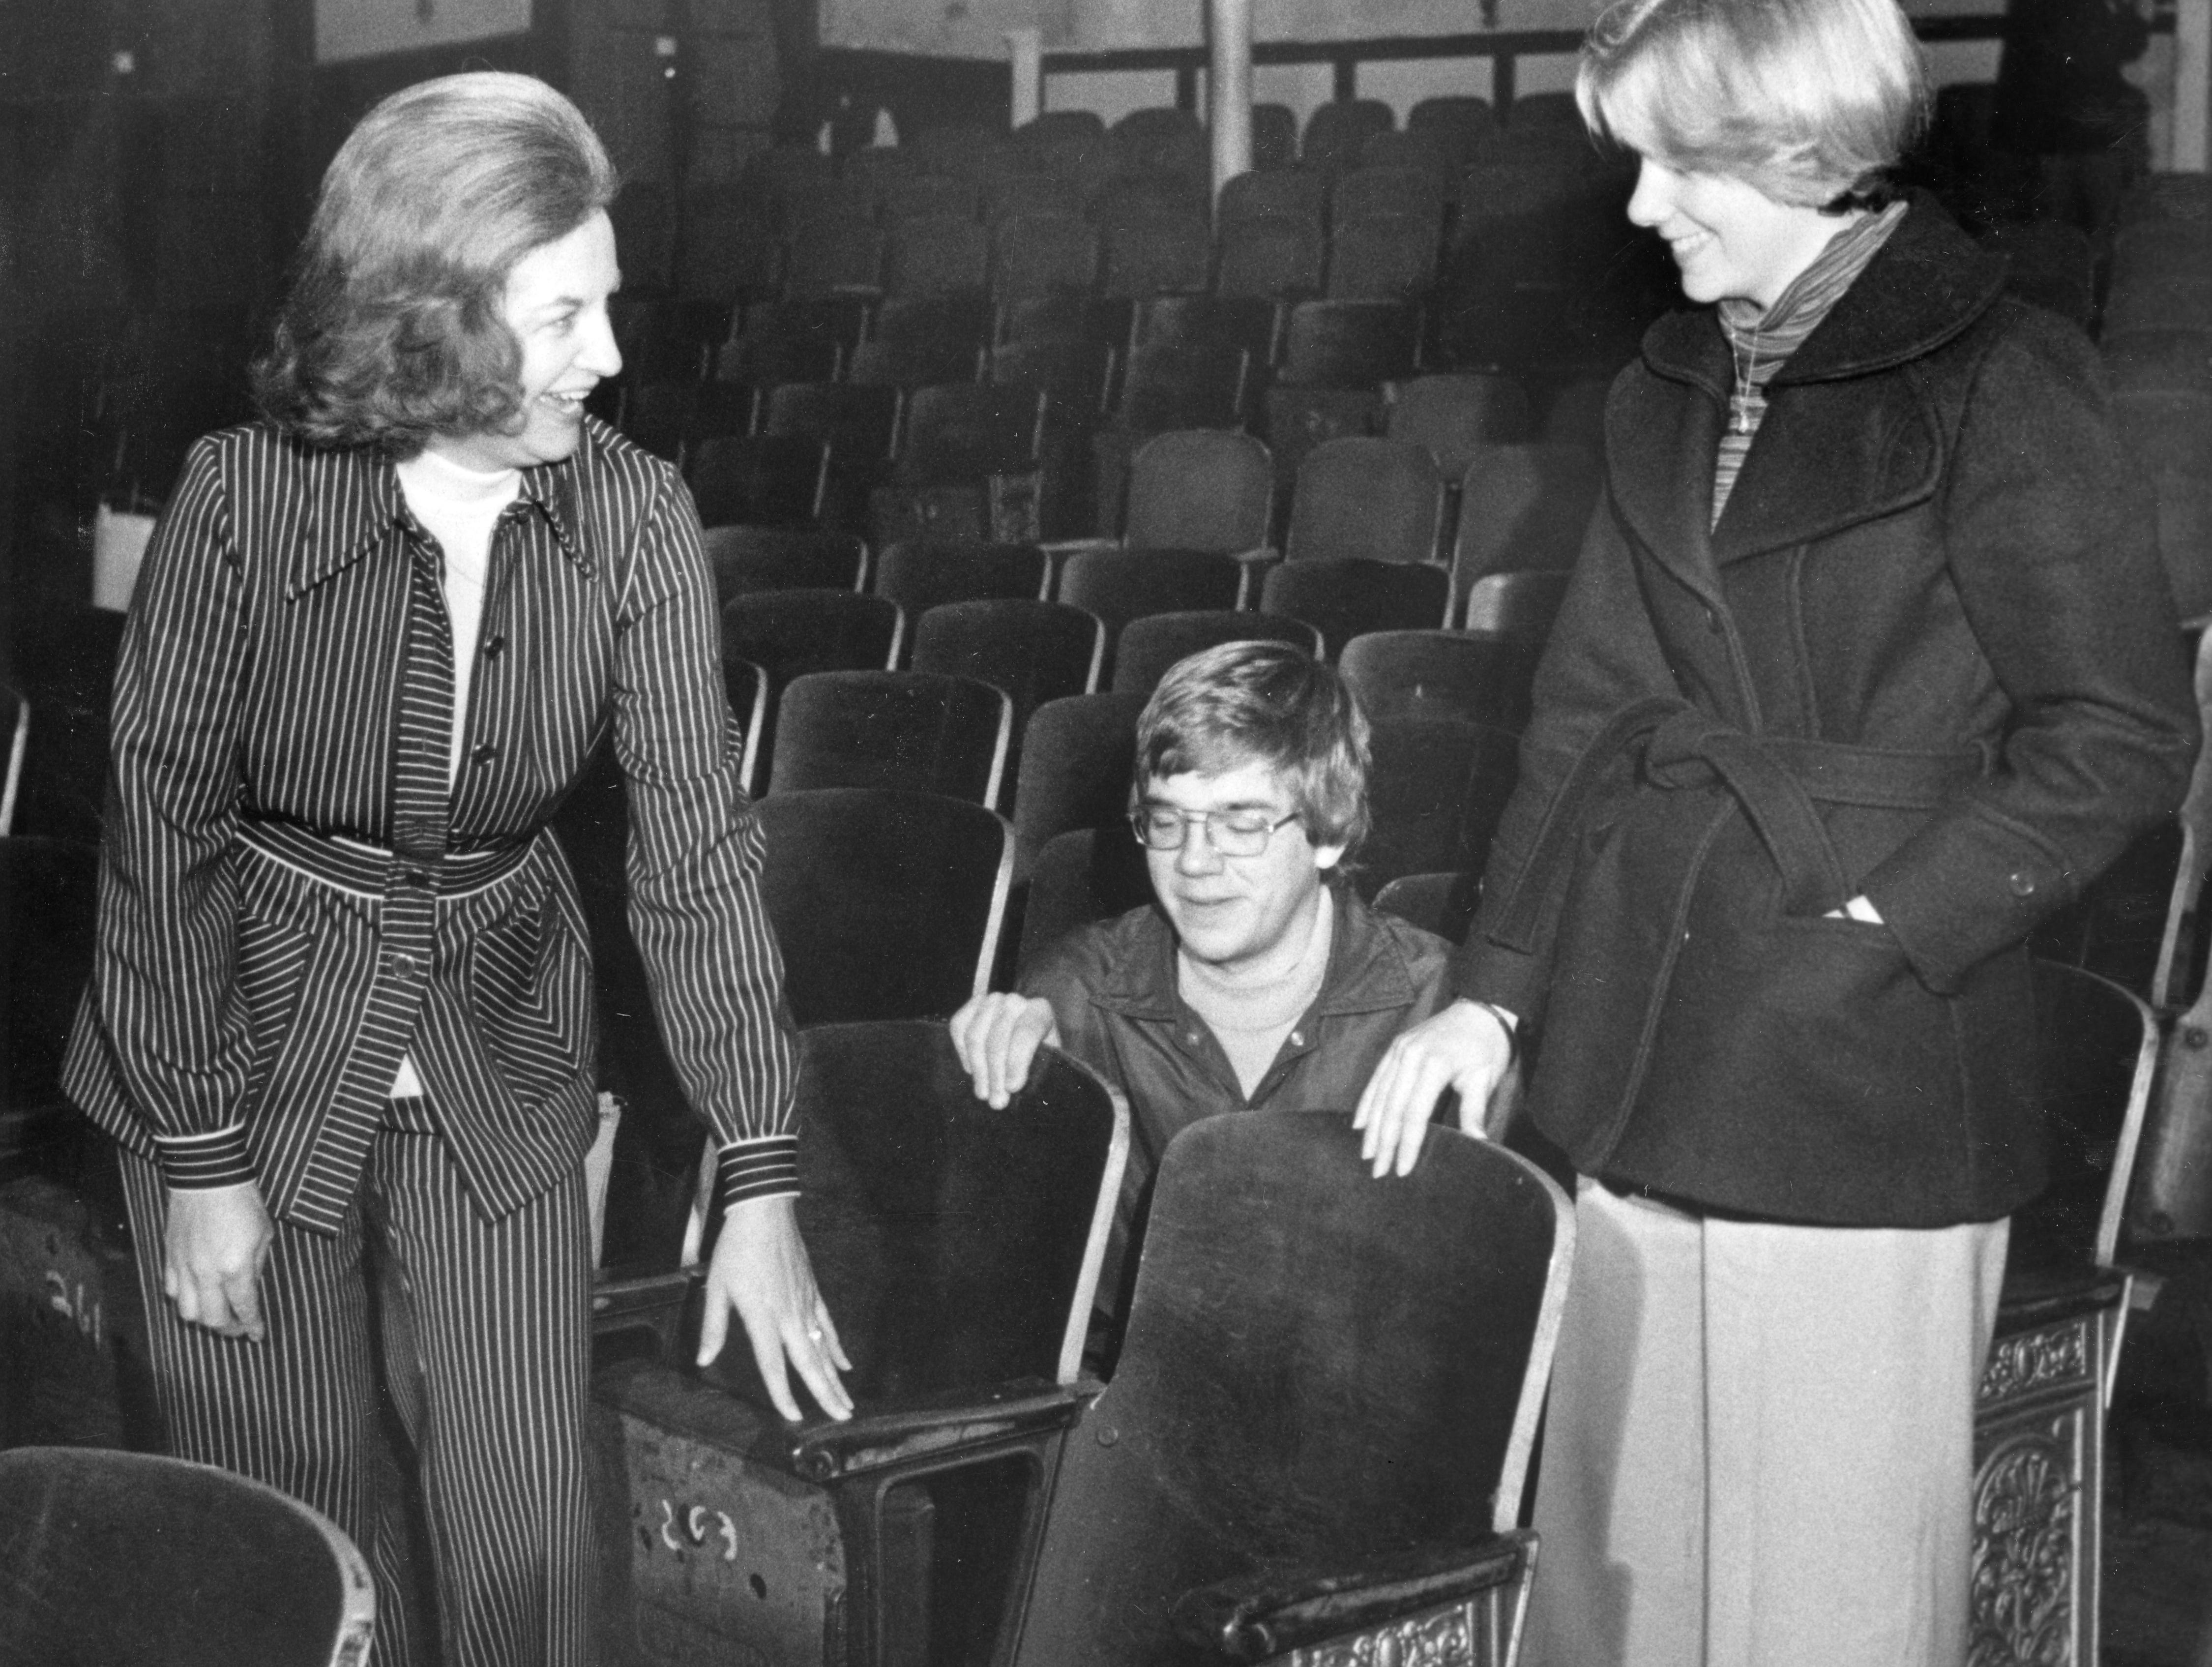 Mary Gifford, Jim Burns and Sue Rufus inspect the new seats at the newly renovated Bijou Theatre on December 13, 1976.